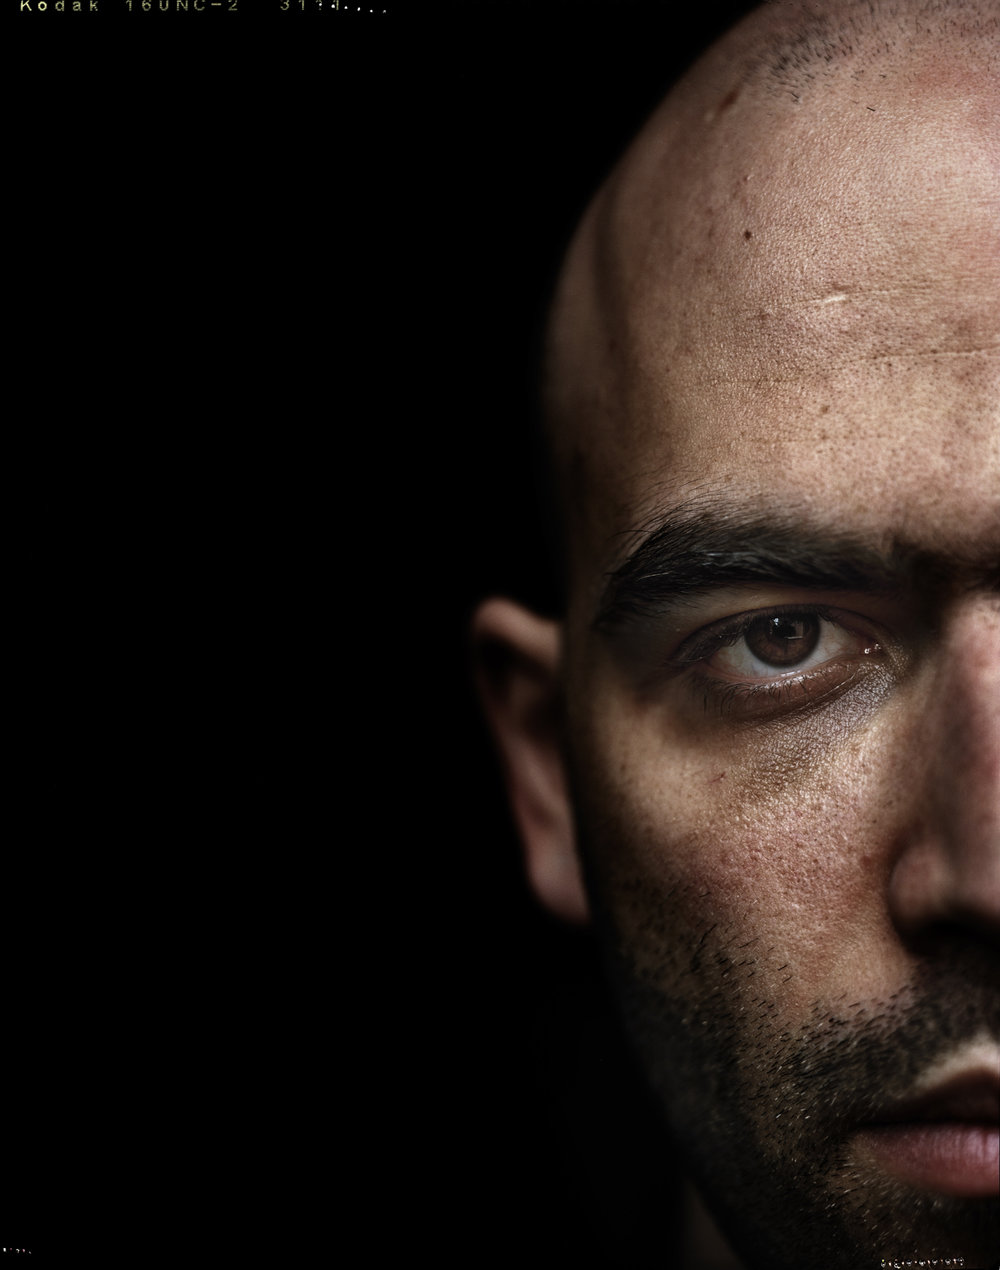 """Rome, 04 March 2009.The italian writer Roberto Saviano, 30 years old, author of the best-seller """"Gomorrah""""."""